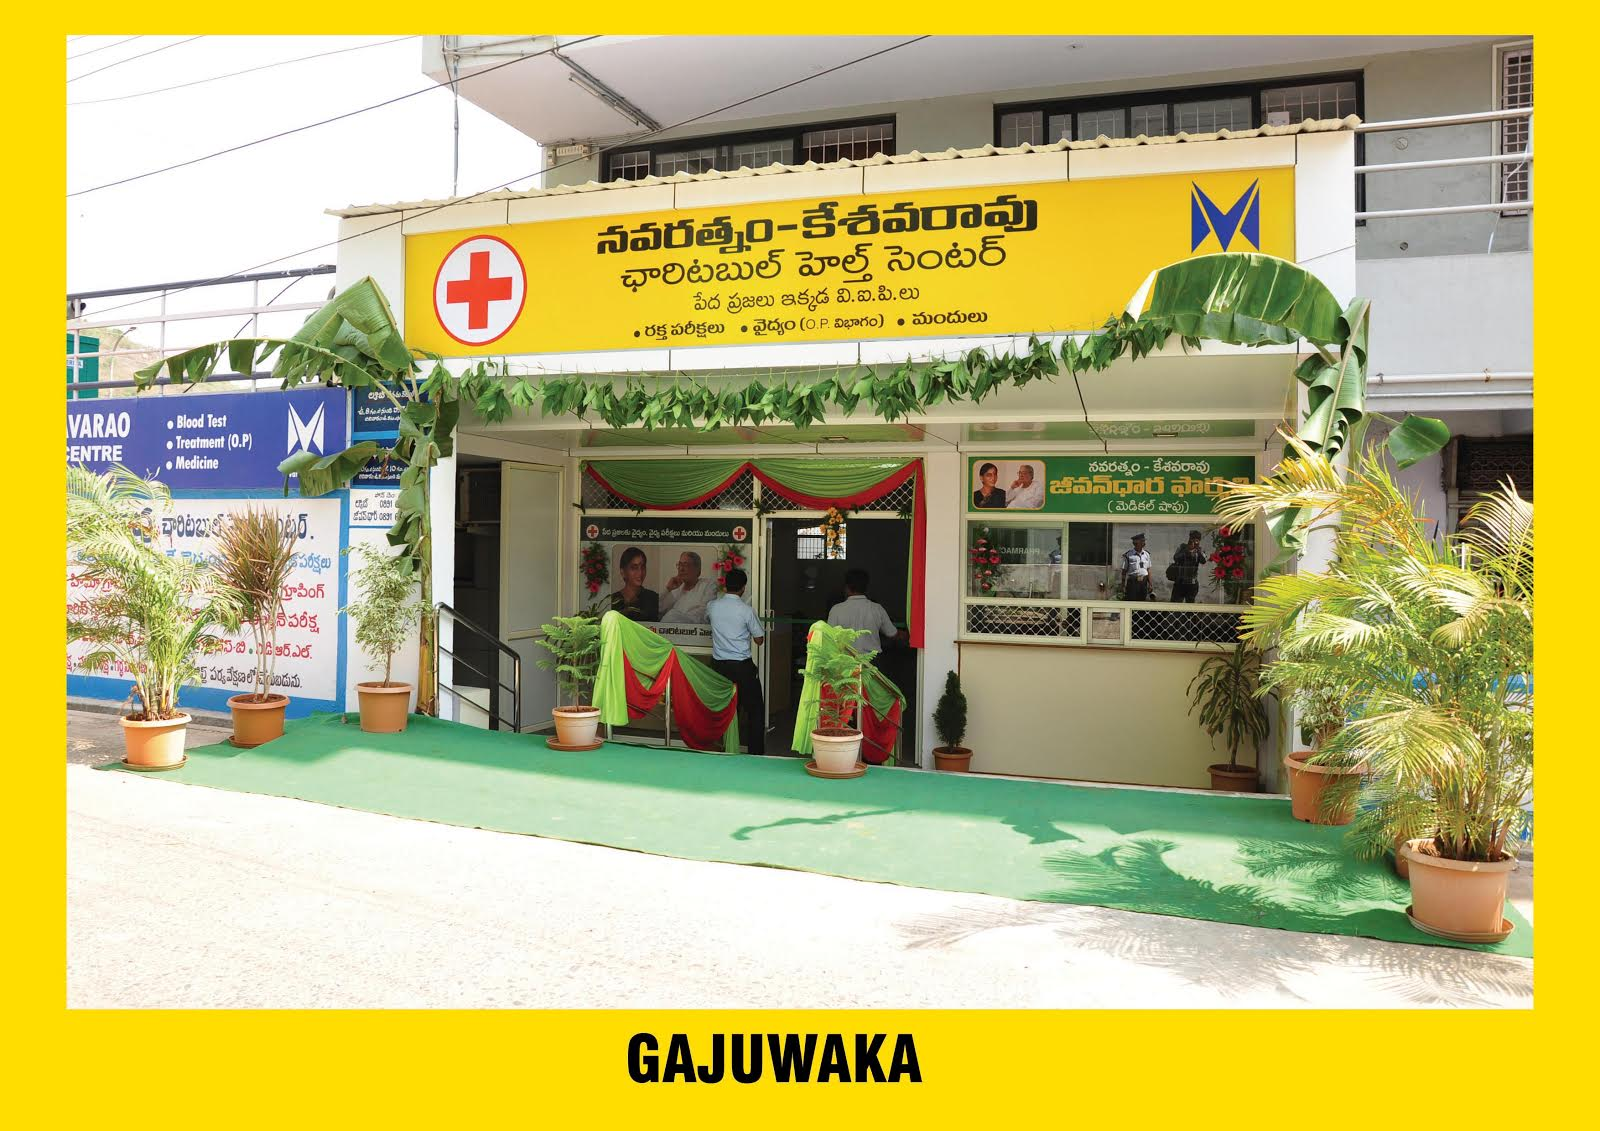 gajuwaka health centre